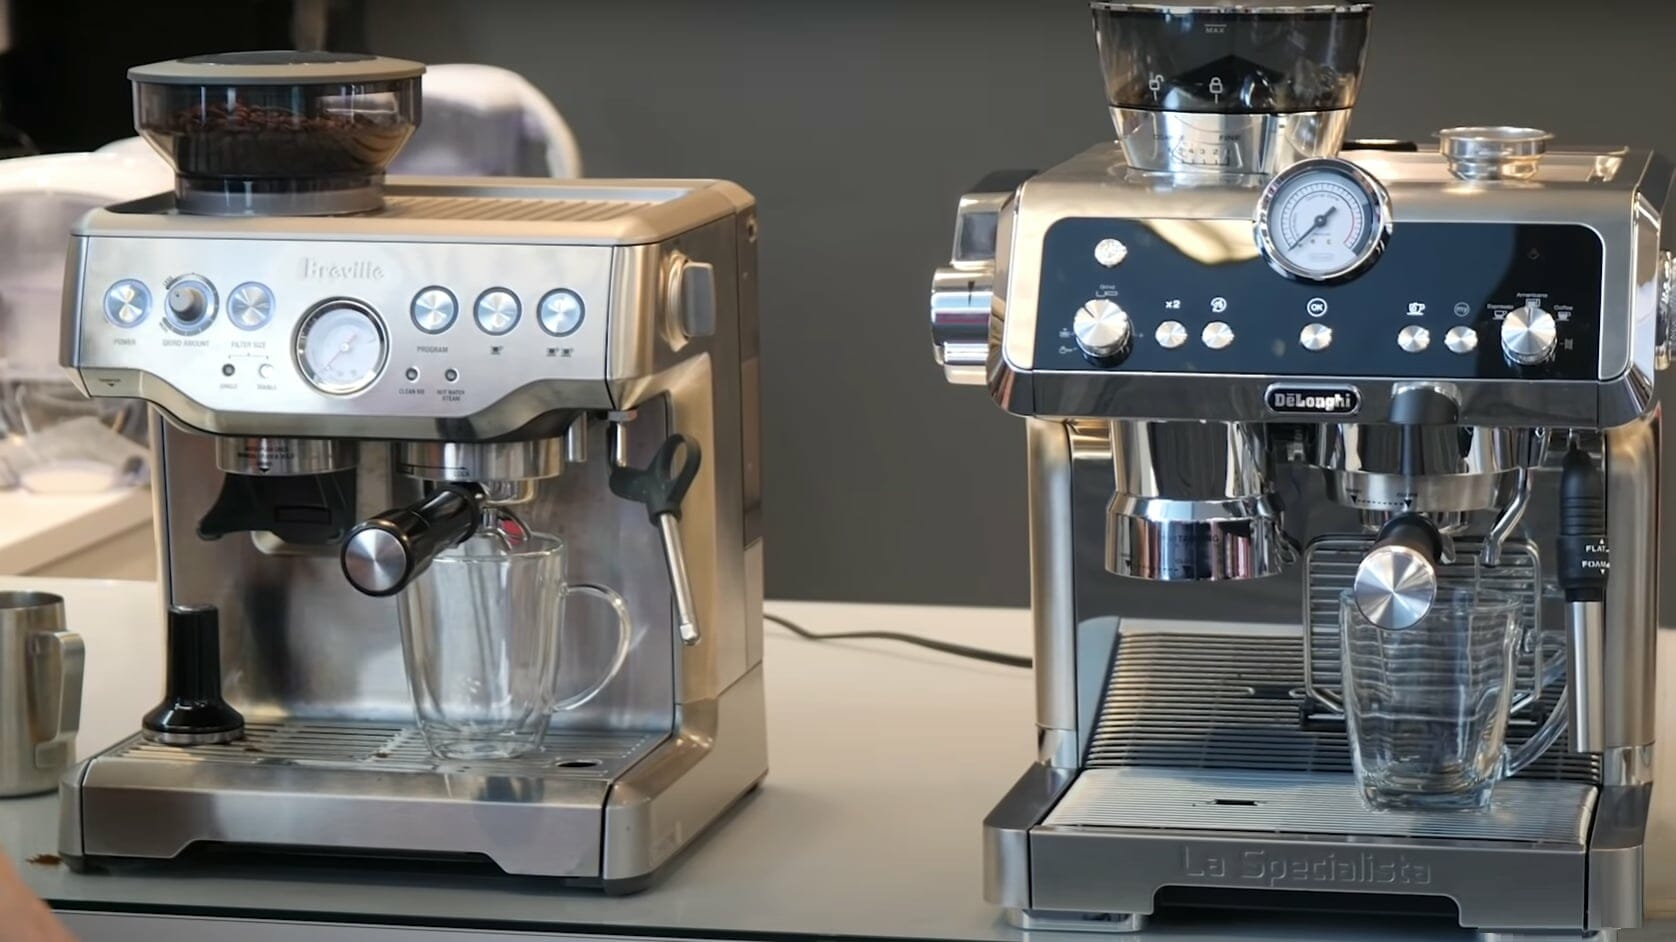 breville express vs delonghi specialty